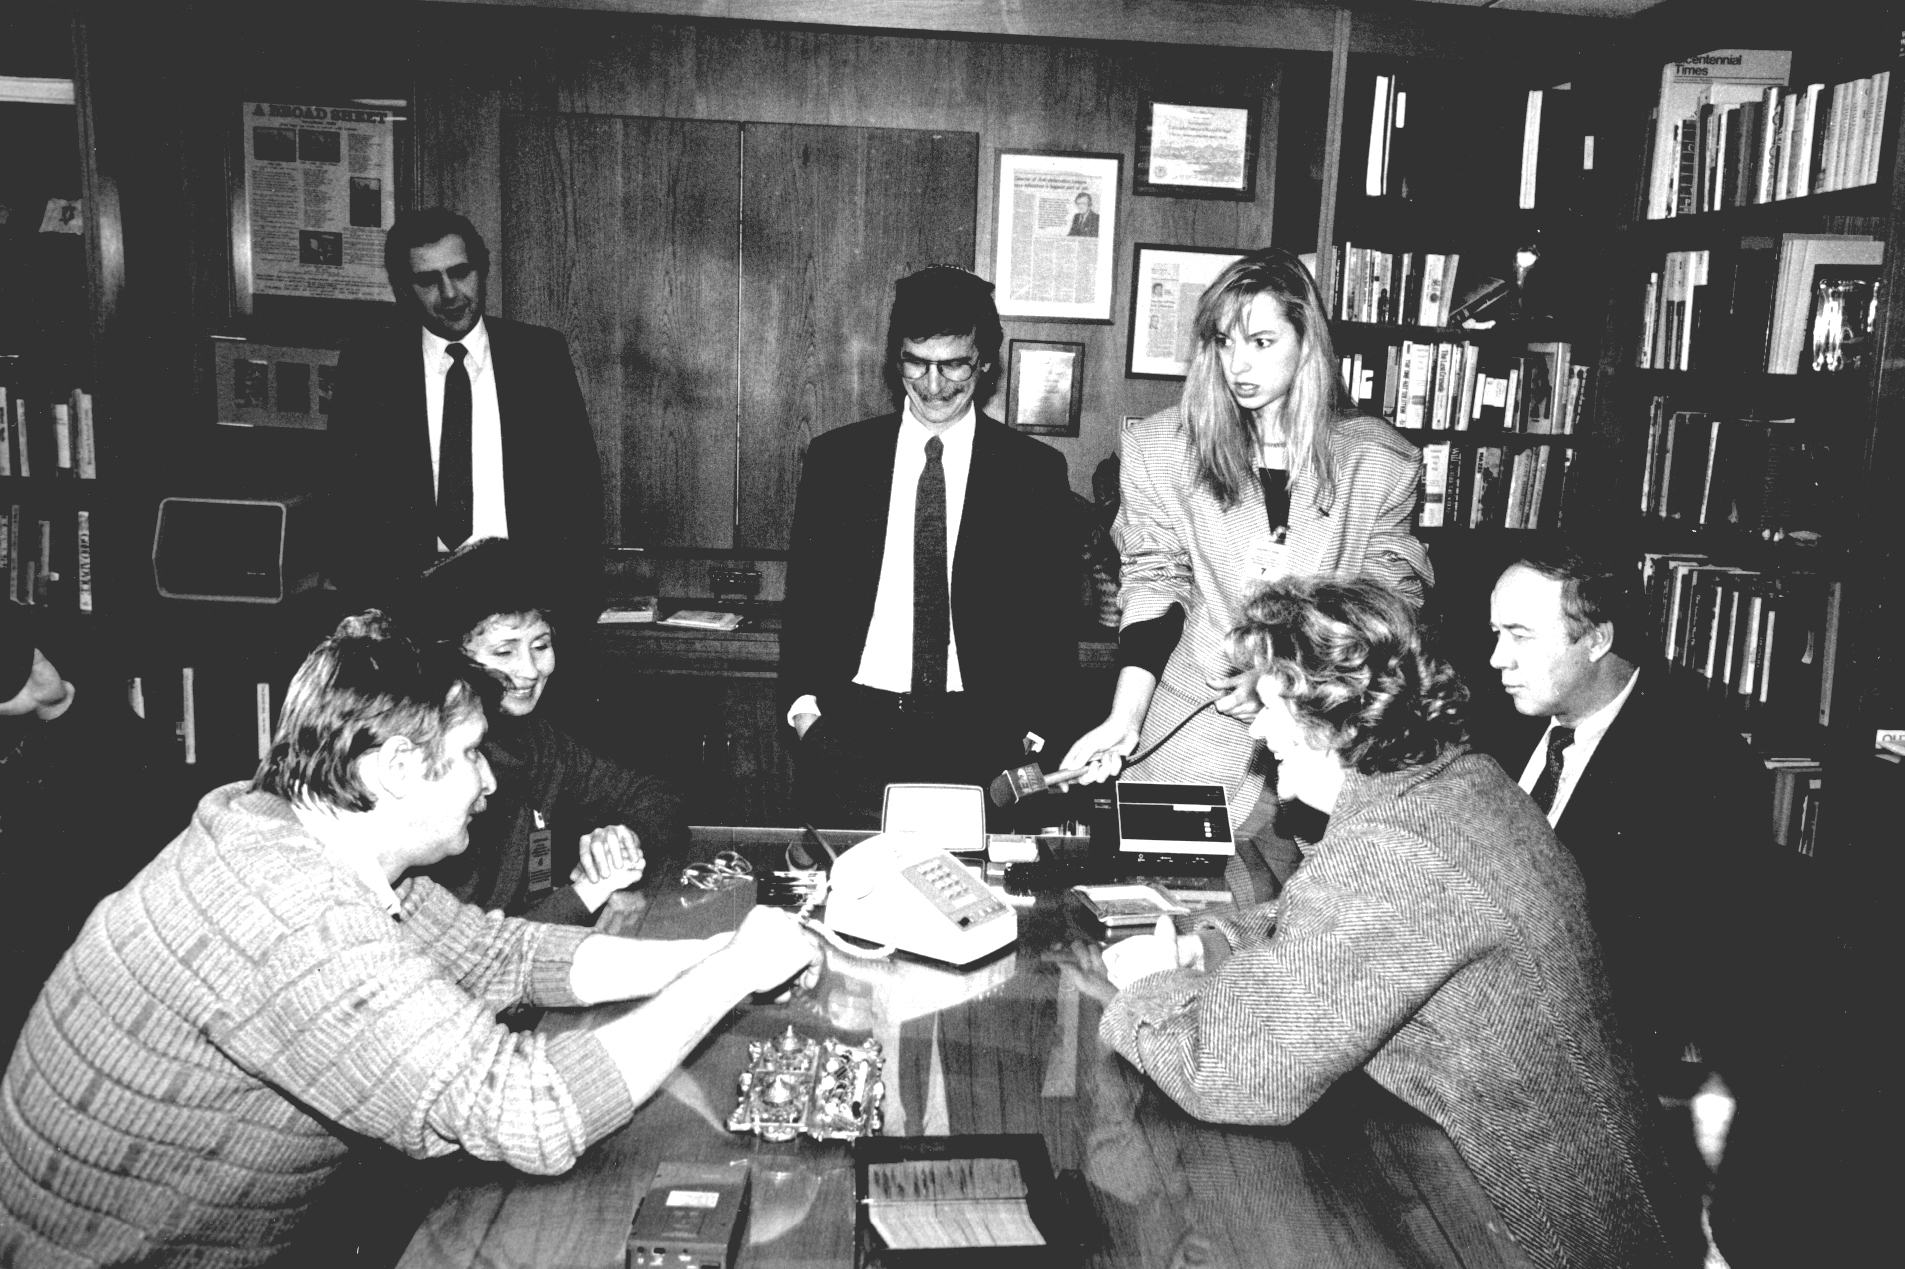 "Click photo to download. Caption: As part of a 1988 initiative to free Soviet Jewry, newly appointed Hillel International Director Richard M. Joel (left) and Associate International Director Rabbi William Rudolph (center) facilitate a call between former refuseniks and their families in the Soviet Union. Credit: Hillel: The Foundation for Jewish Campus Life.                 0     0     1     6     34     JNS     1     1     39     14.0                            Normal     0                     false     false     false         EN-US     JA     X-NONE                                                                                                                                                                                                                                                                                                                                                                                                                                                                                                                                                                                                                                                                                                                    /* Style Definitions */ table.MsoNormalTable 	{mso-style-name:""Table Normal""; 	mso-tstyle-rowband-size:0; 	mso-tstyle-colband-size:0; 	mso-style-noshow:yes; 	mso-style-priority:99; 	mso-style-parent:""""; 	mso-padding-alt:0in 5.4pt 0in 5.4pt; 	mso-para-margin:0in; 	mso-para-margin-bottom:.0001pt; 	mso-pagination:widow-orphan; 	font-size:12.0pt; 	font-family:Cambria; 	mso-ascii-font-family:Cambria; 	mso-ascii-theme-font:minor-latin; 	mso-hansi-font-family:Cambria; 	mso-hansi-theme-font:minor-latin;}"